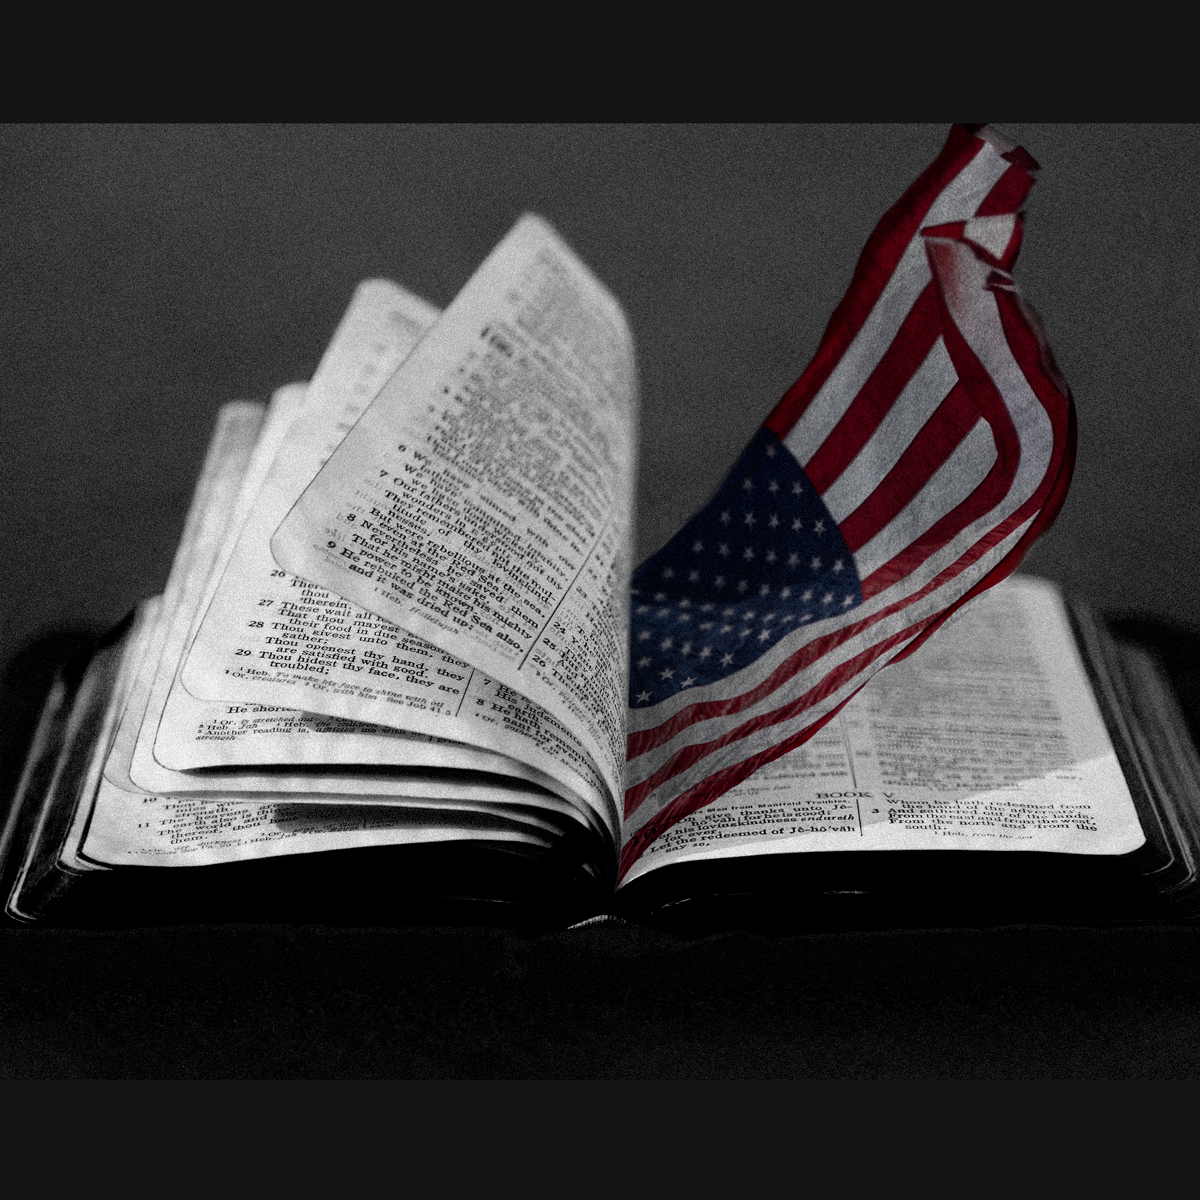 Bible, Pages, Flag in Bible's pages